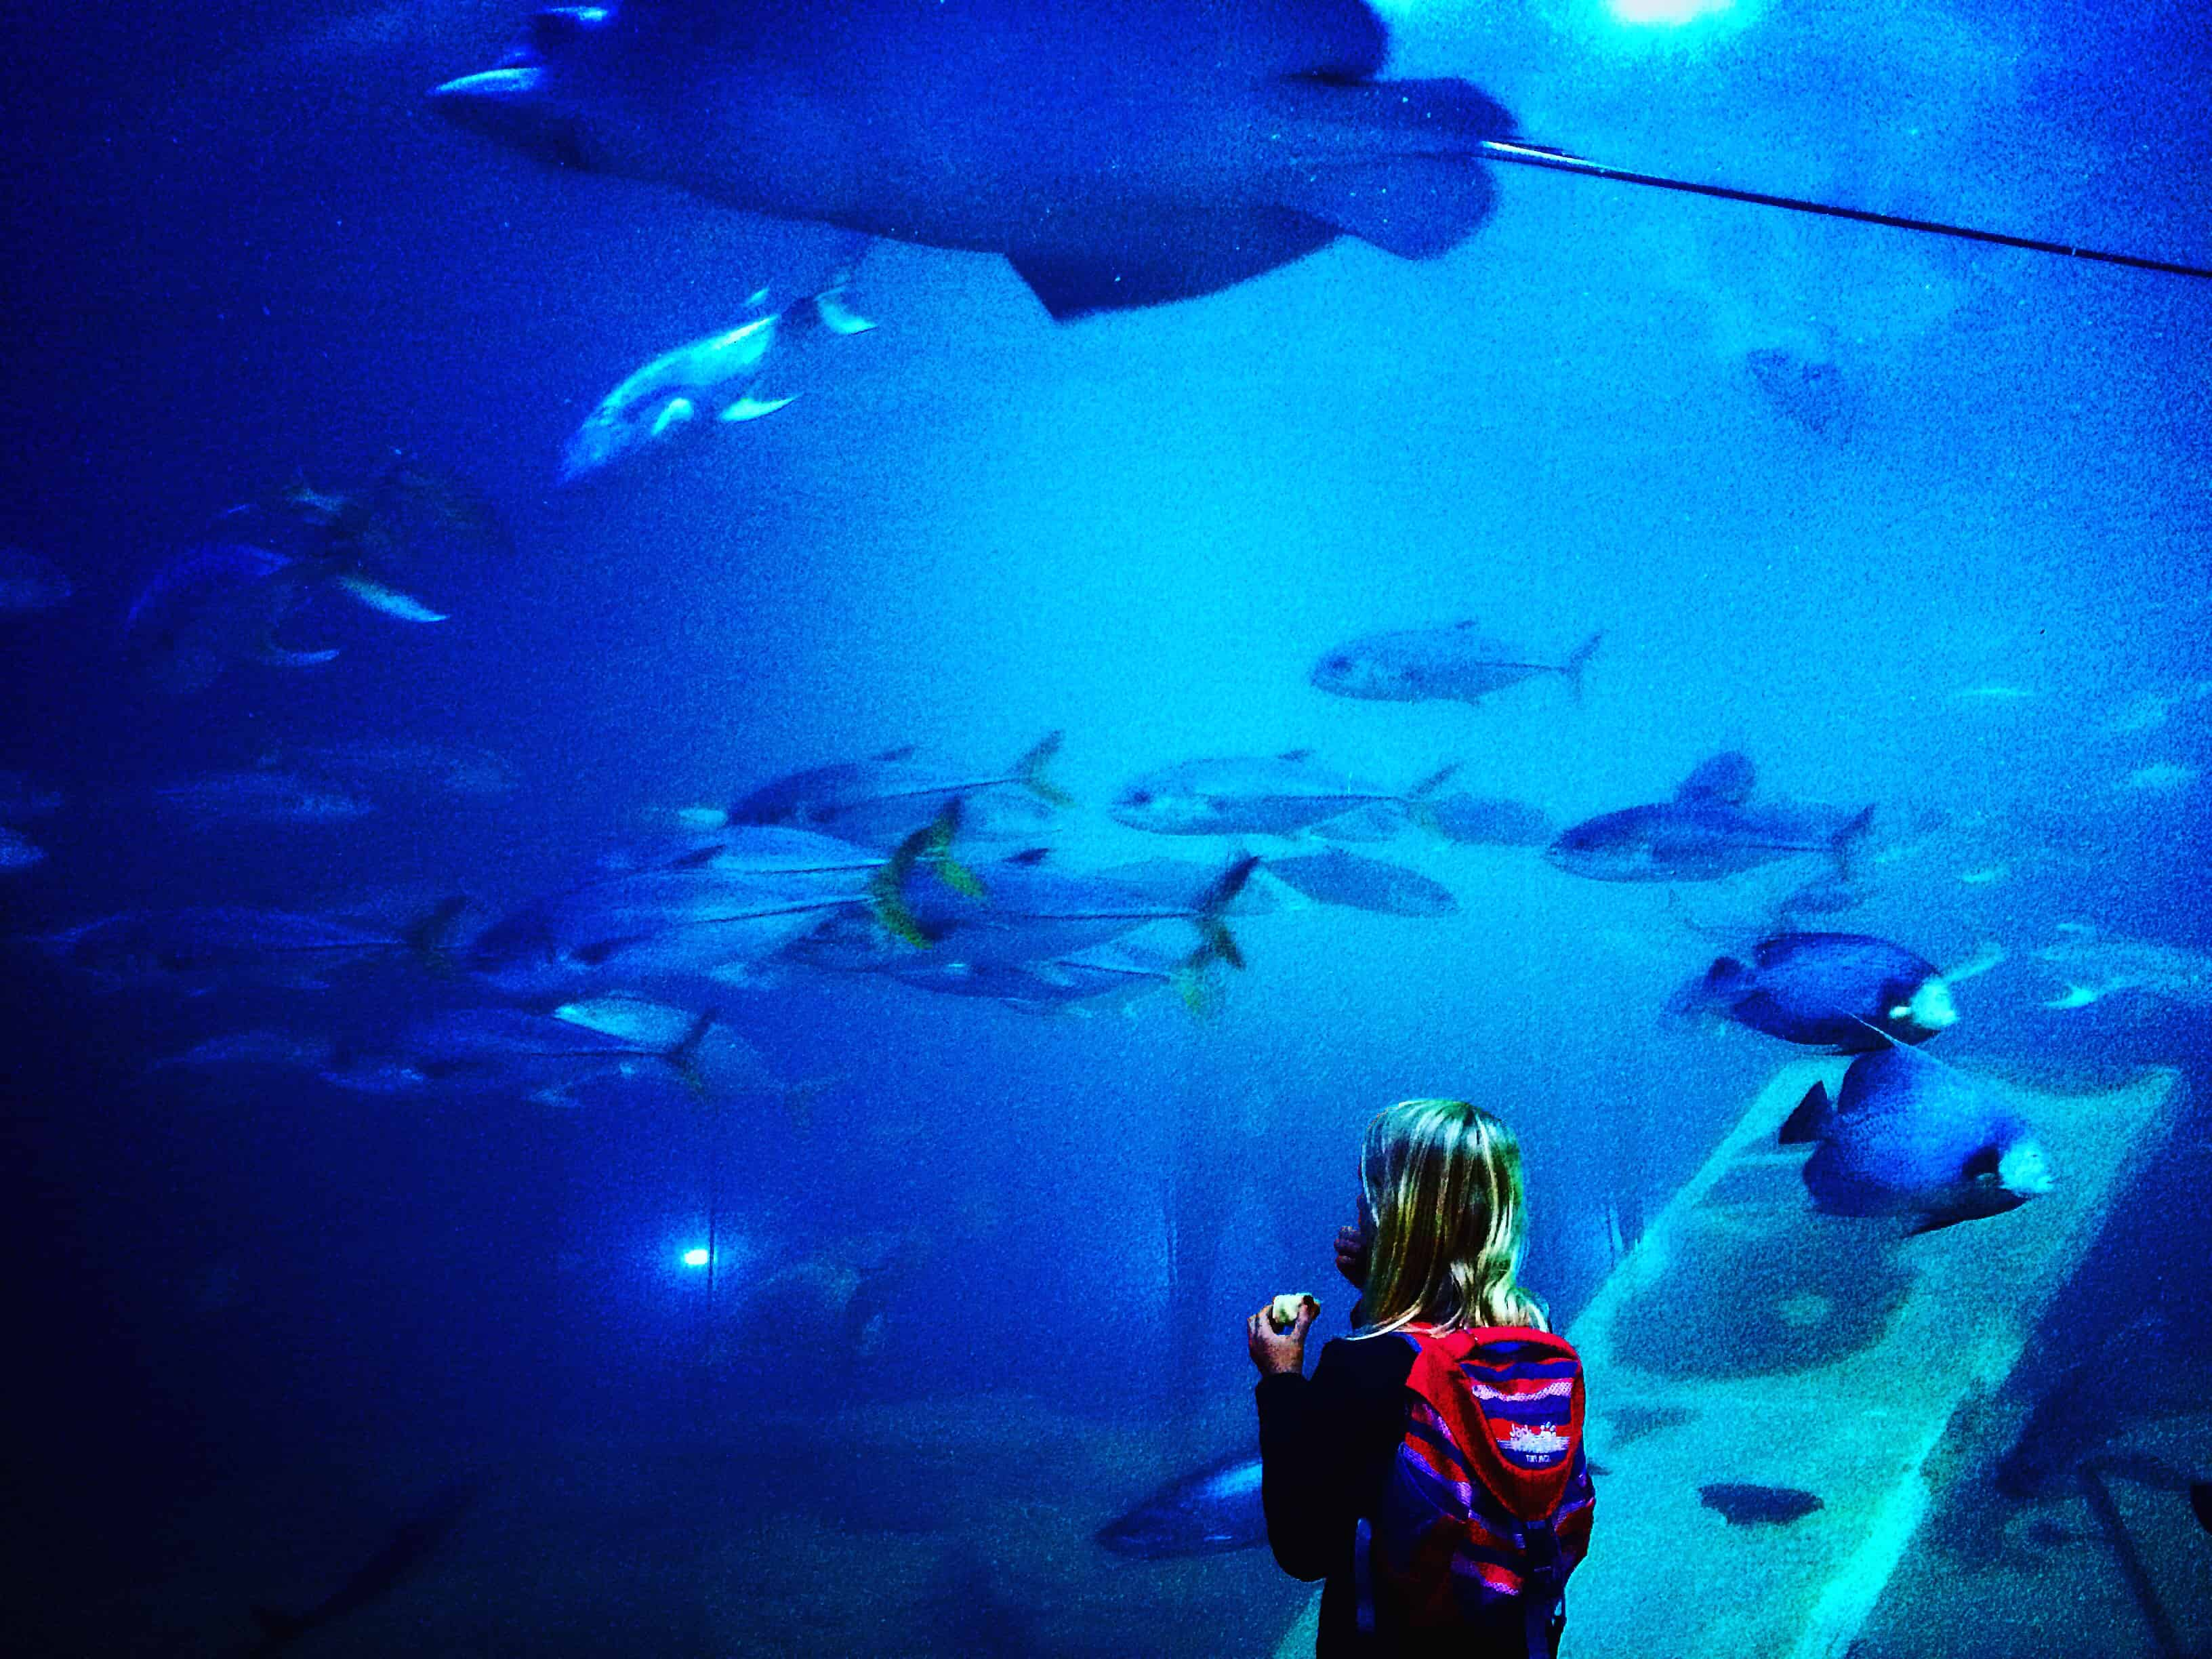 5 Reasons To Visit The National Marine Aquarium In Plymouth